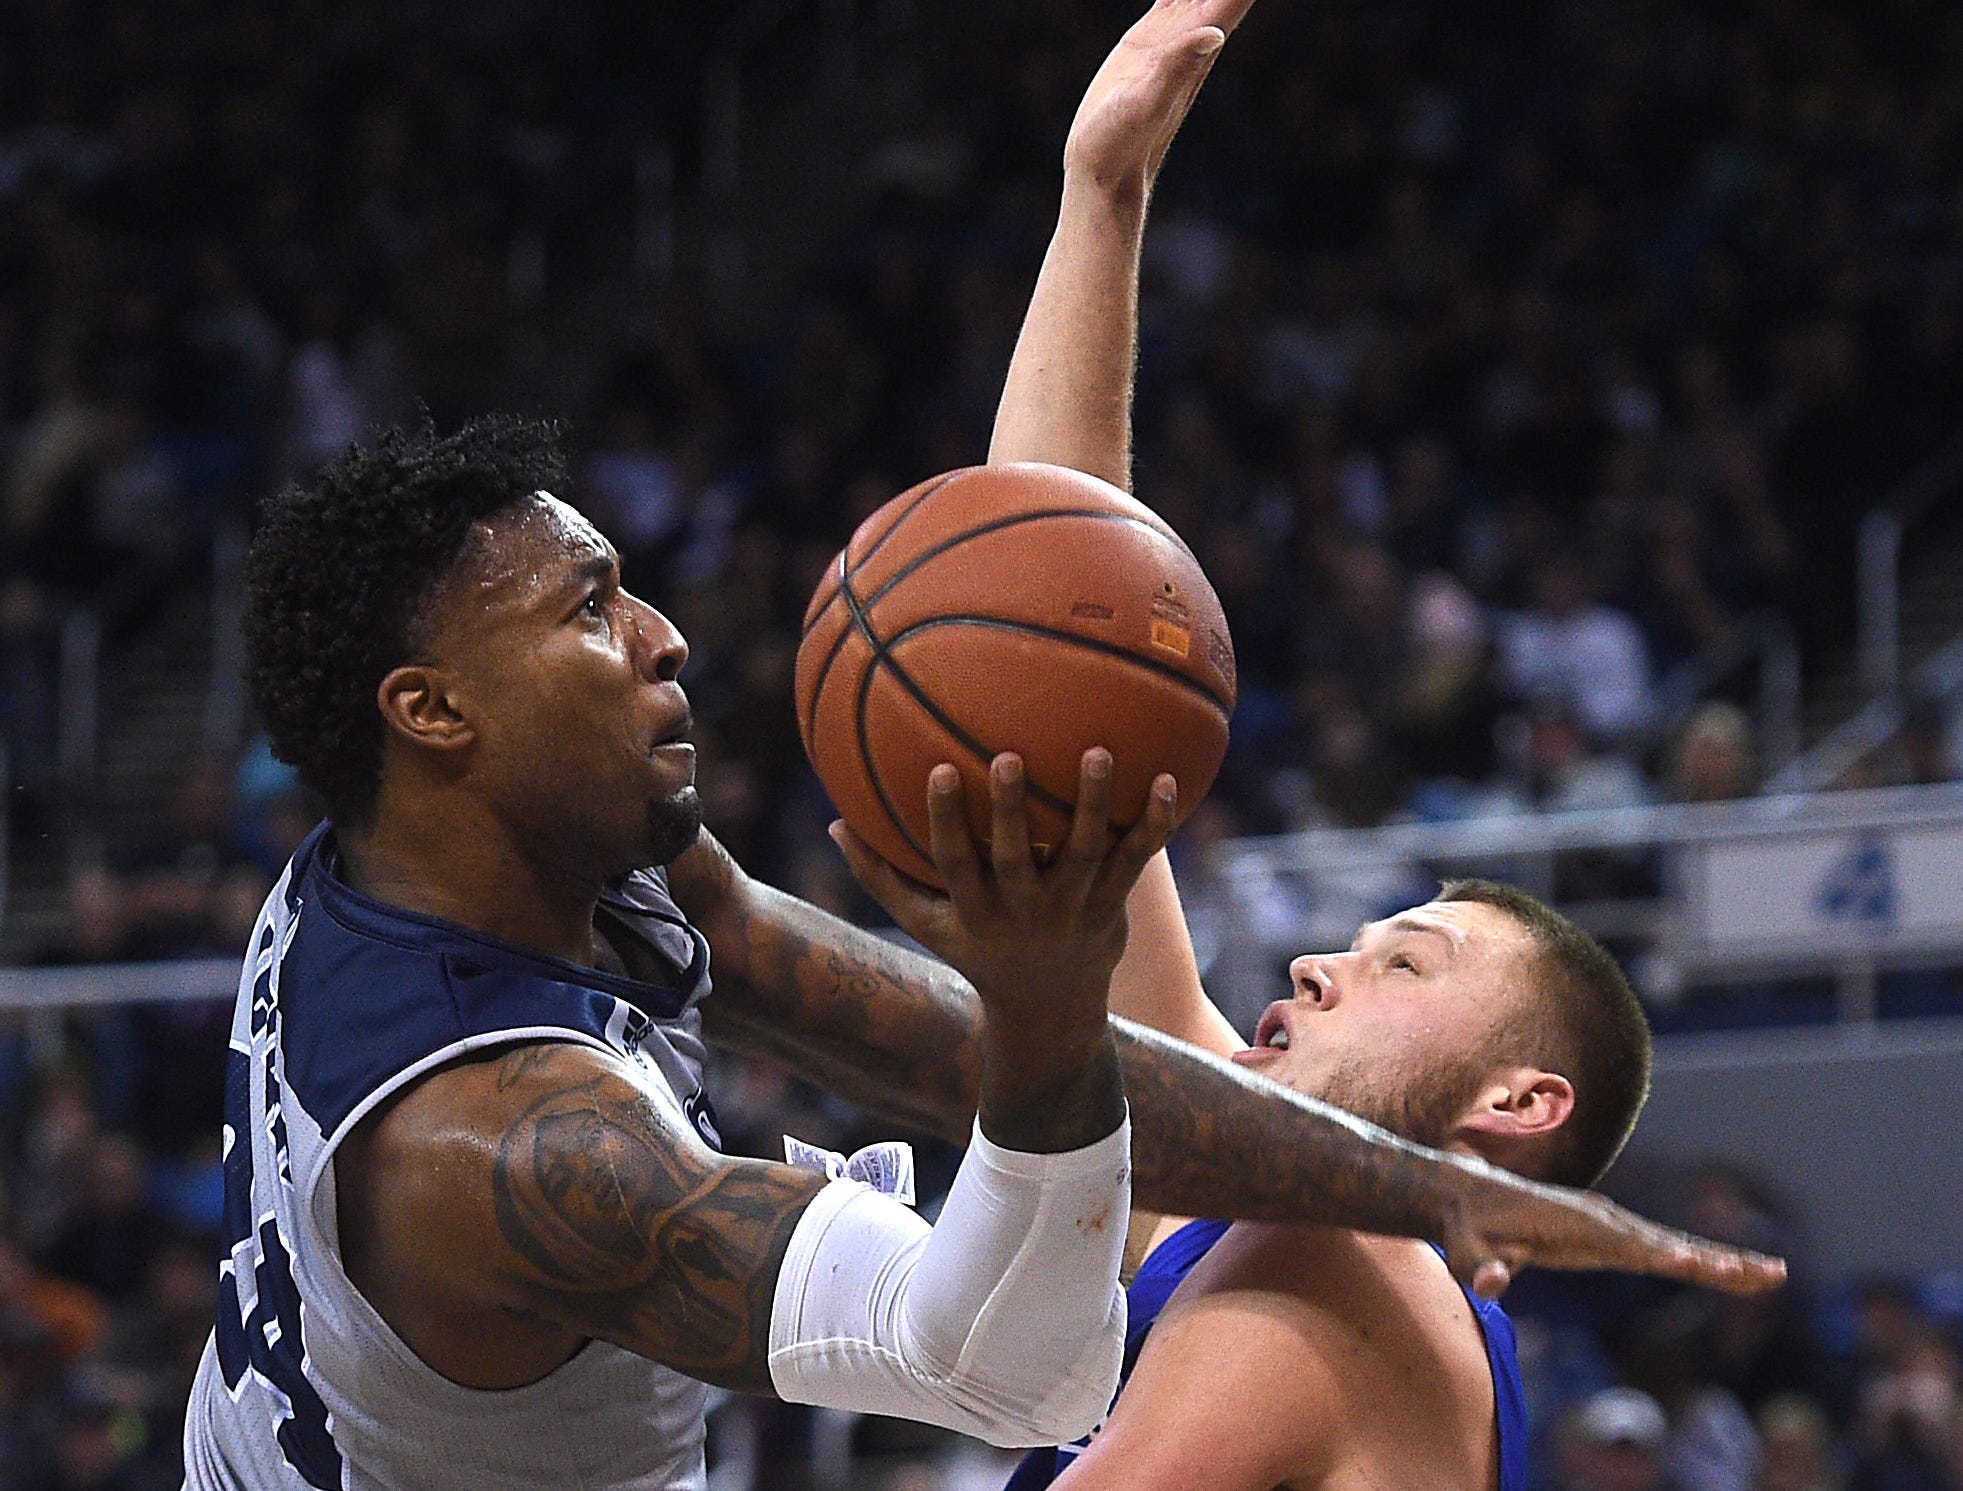 Nevada's Jordan Caroline shoots while taking on South Dakota State during their basketball game at Lawlor Events Center in Reno on Dec. 15, 2018.